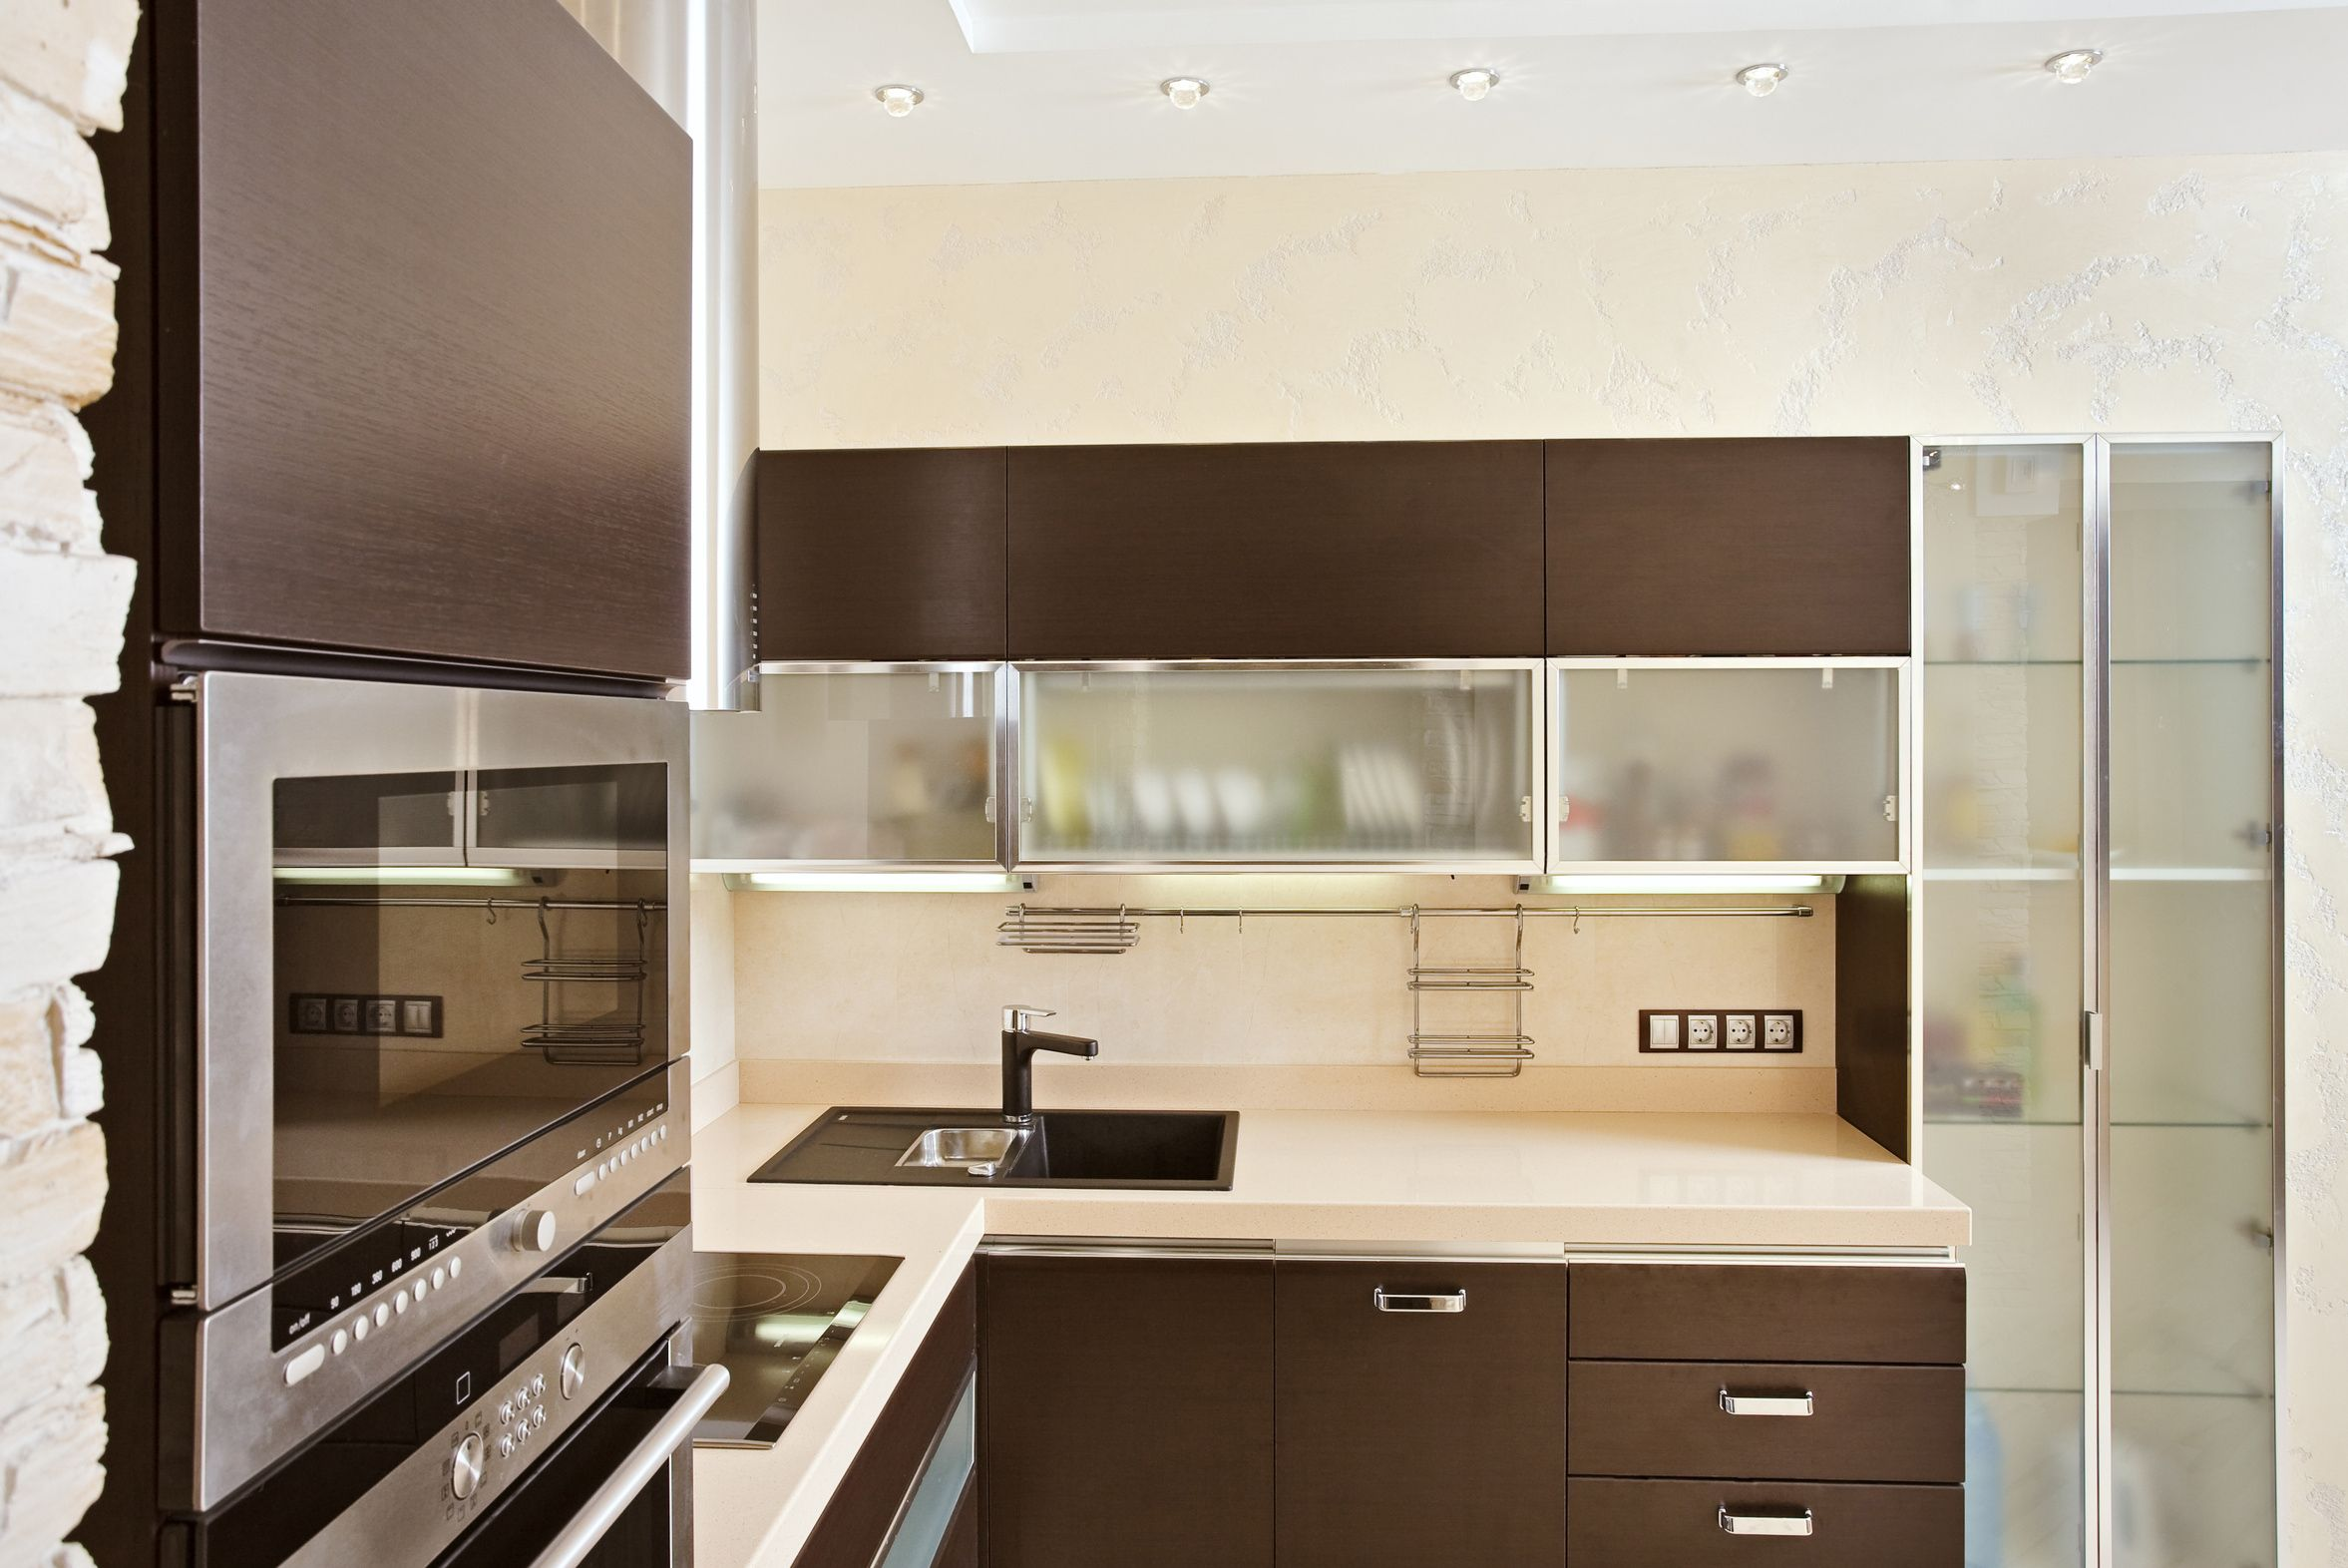 Aluminum Frame Glass Cabinet Doors | Frame Style: BRW | Anodizing: Chrome |  Insert: Frosted Glass